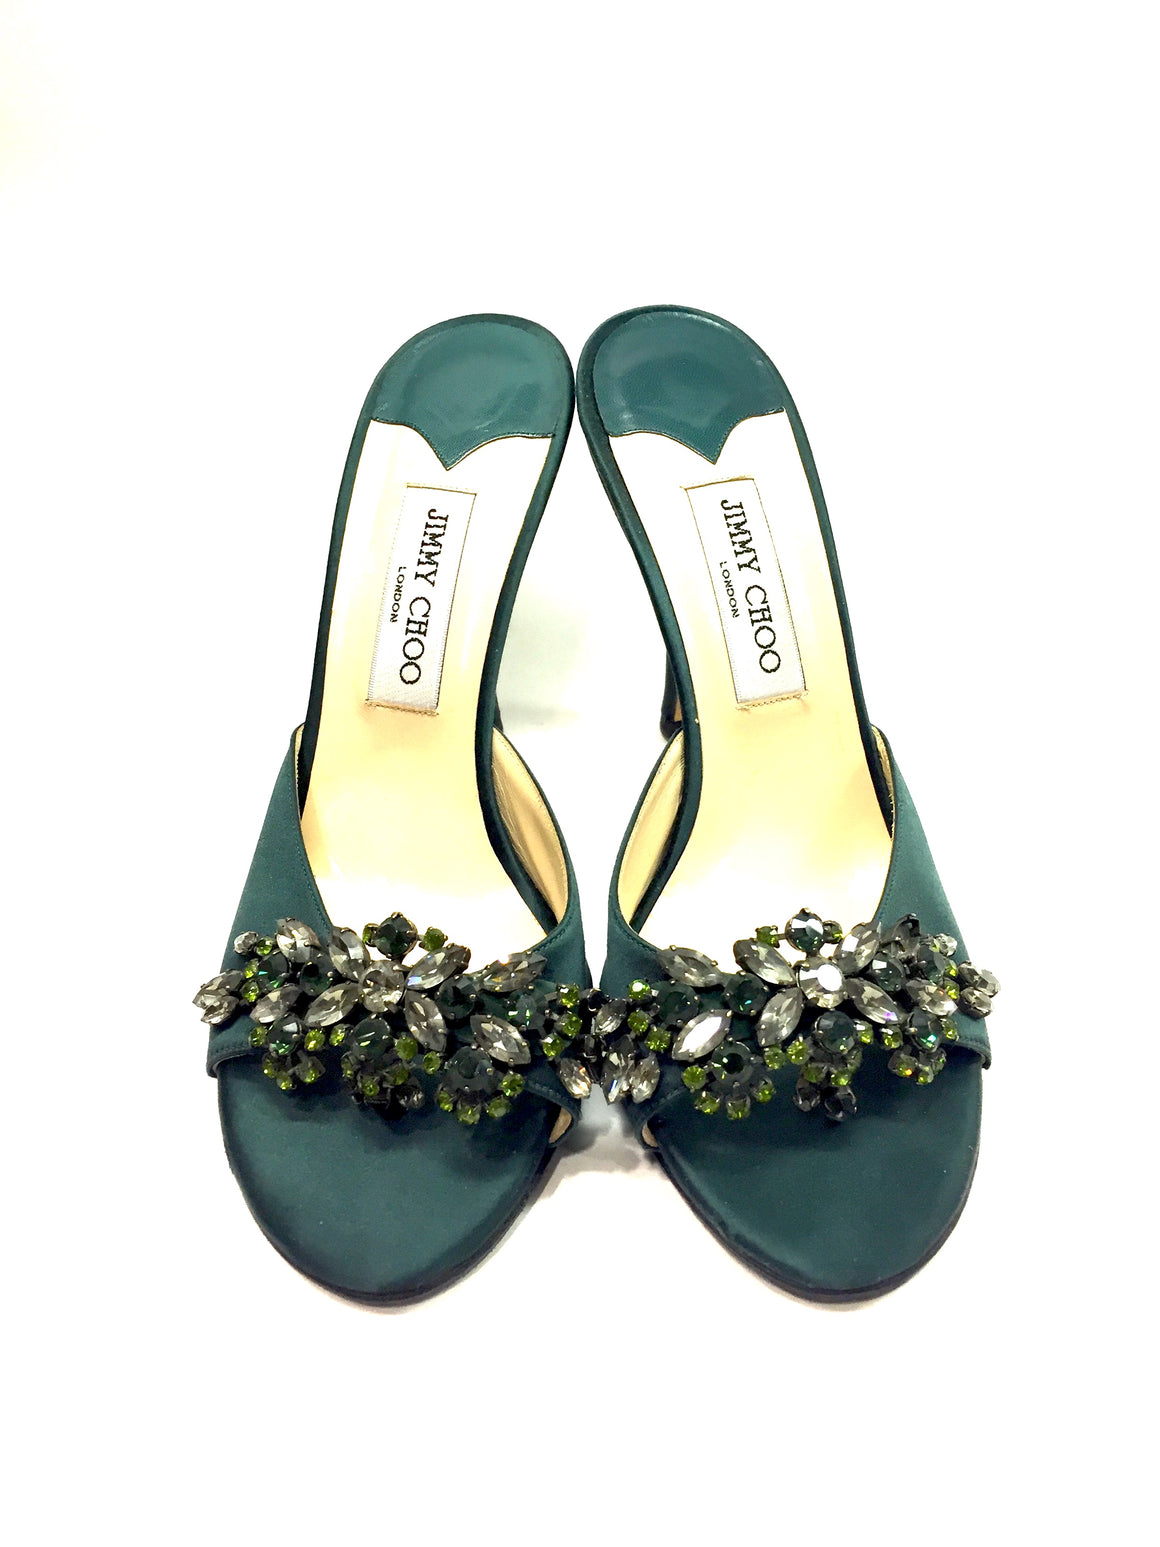 JIMMY CHOO Forest-Green Satin Jeweled Embellishment Hi-Heel Slip-On Sandals Sz41